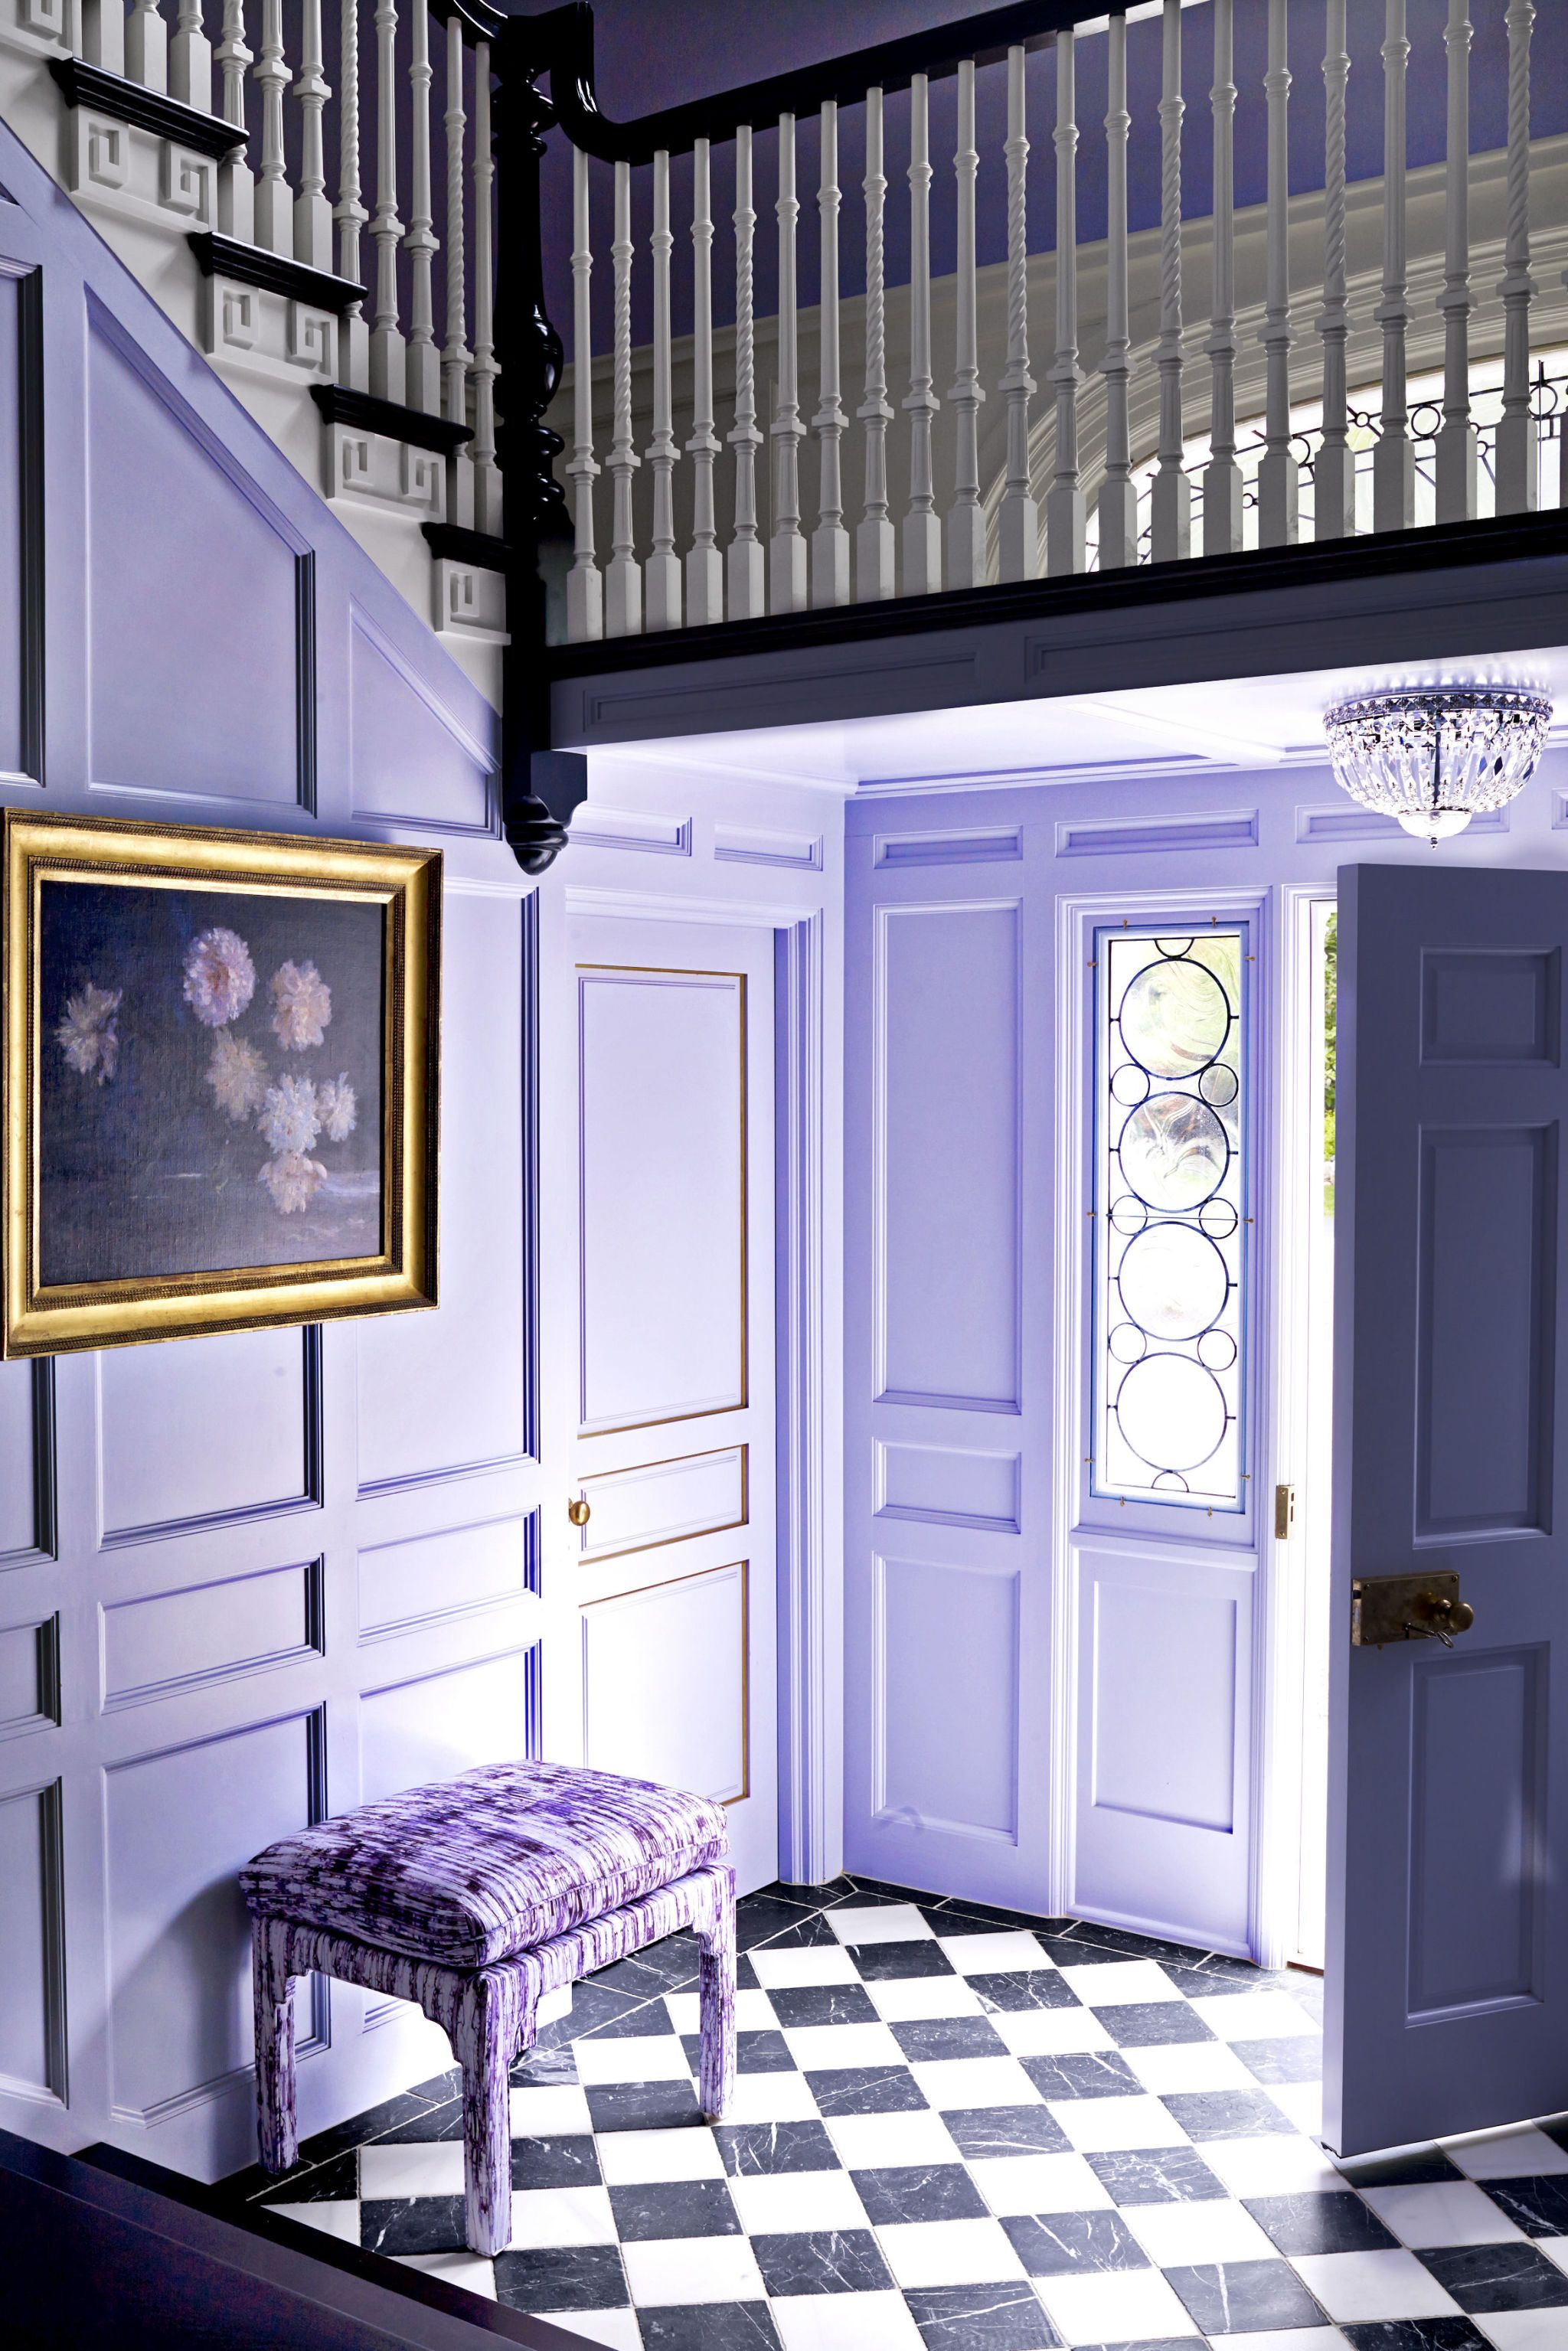 benjamin moore lavender mist & 12 Best Paint Colors - Interior Designersu0027 Favorite Wall Paint Colors